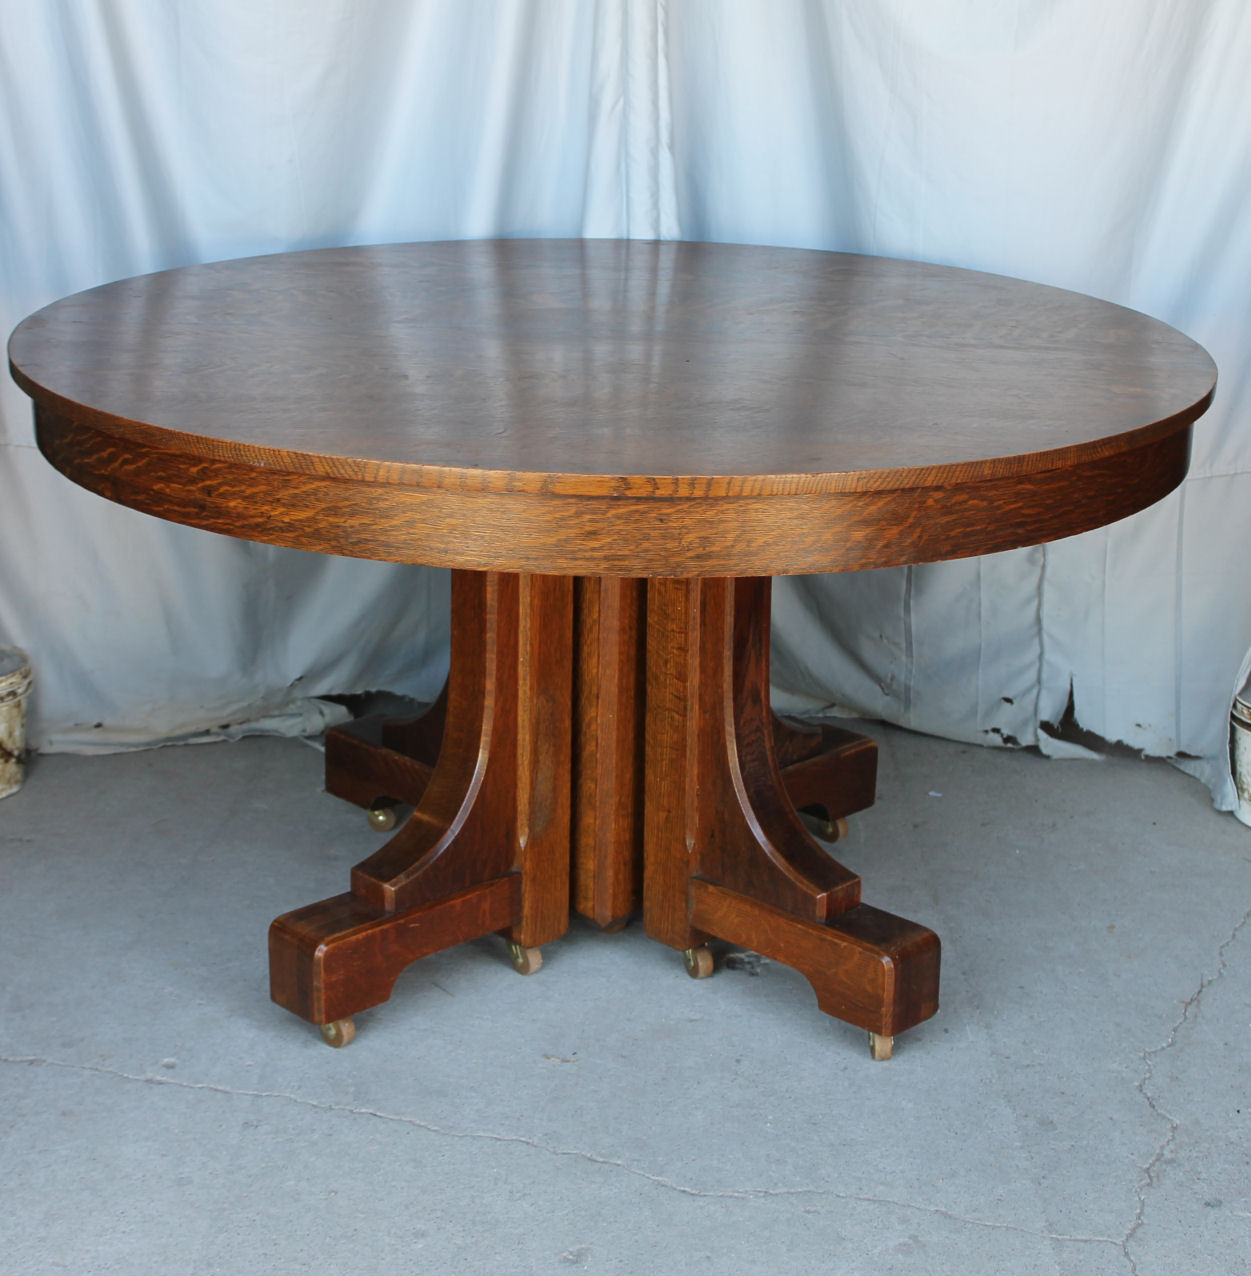 Round Oak Dining Table Mission Style Round Oak Dining Table 54 Inch 4 Leaves